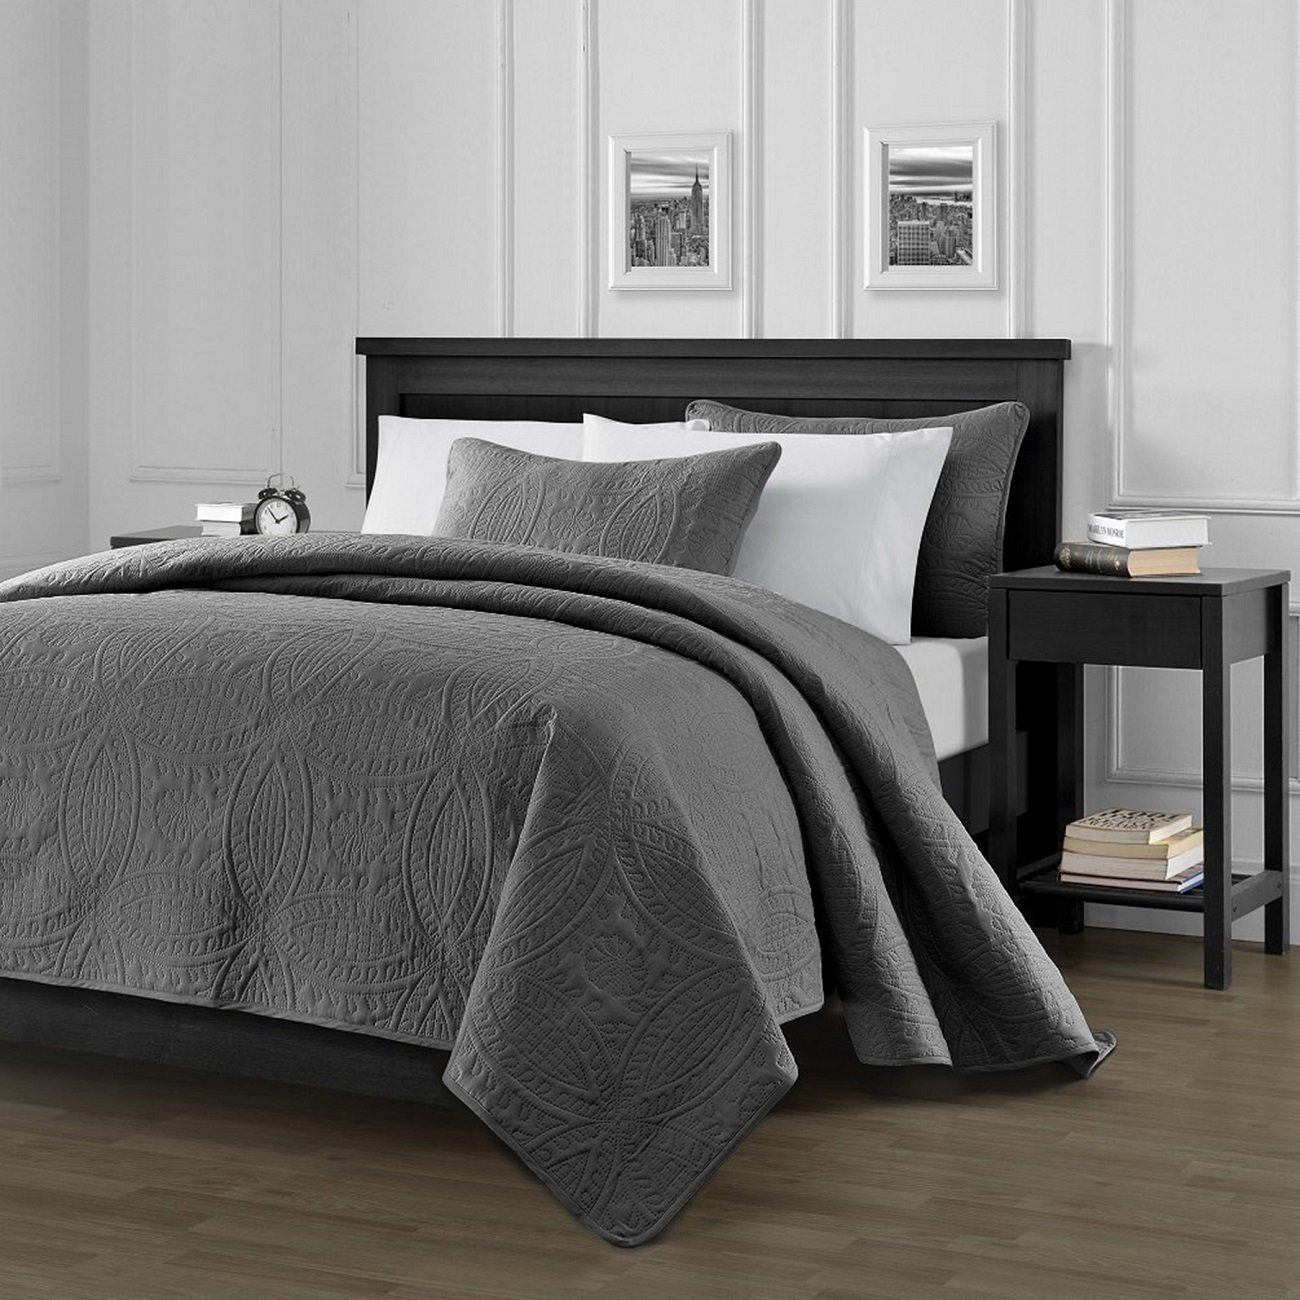 Chezmoi Collection Austin 3-piece Oversized Bedspread Coverlet Set King, Charcoal